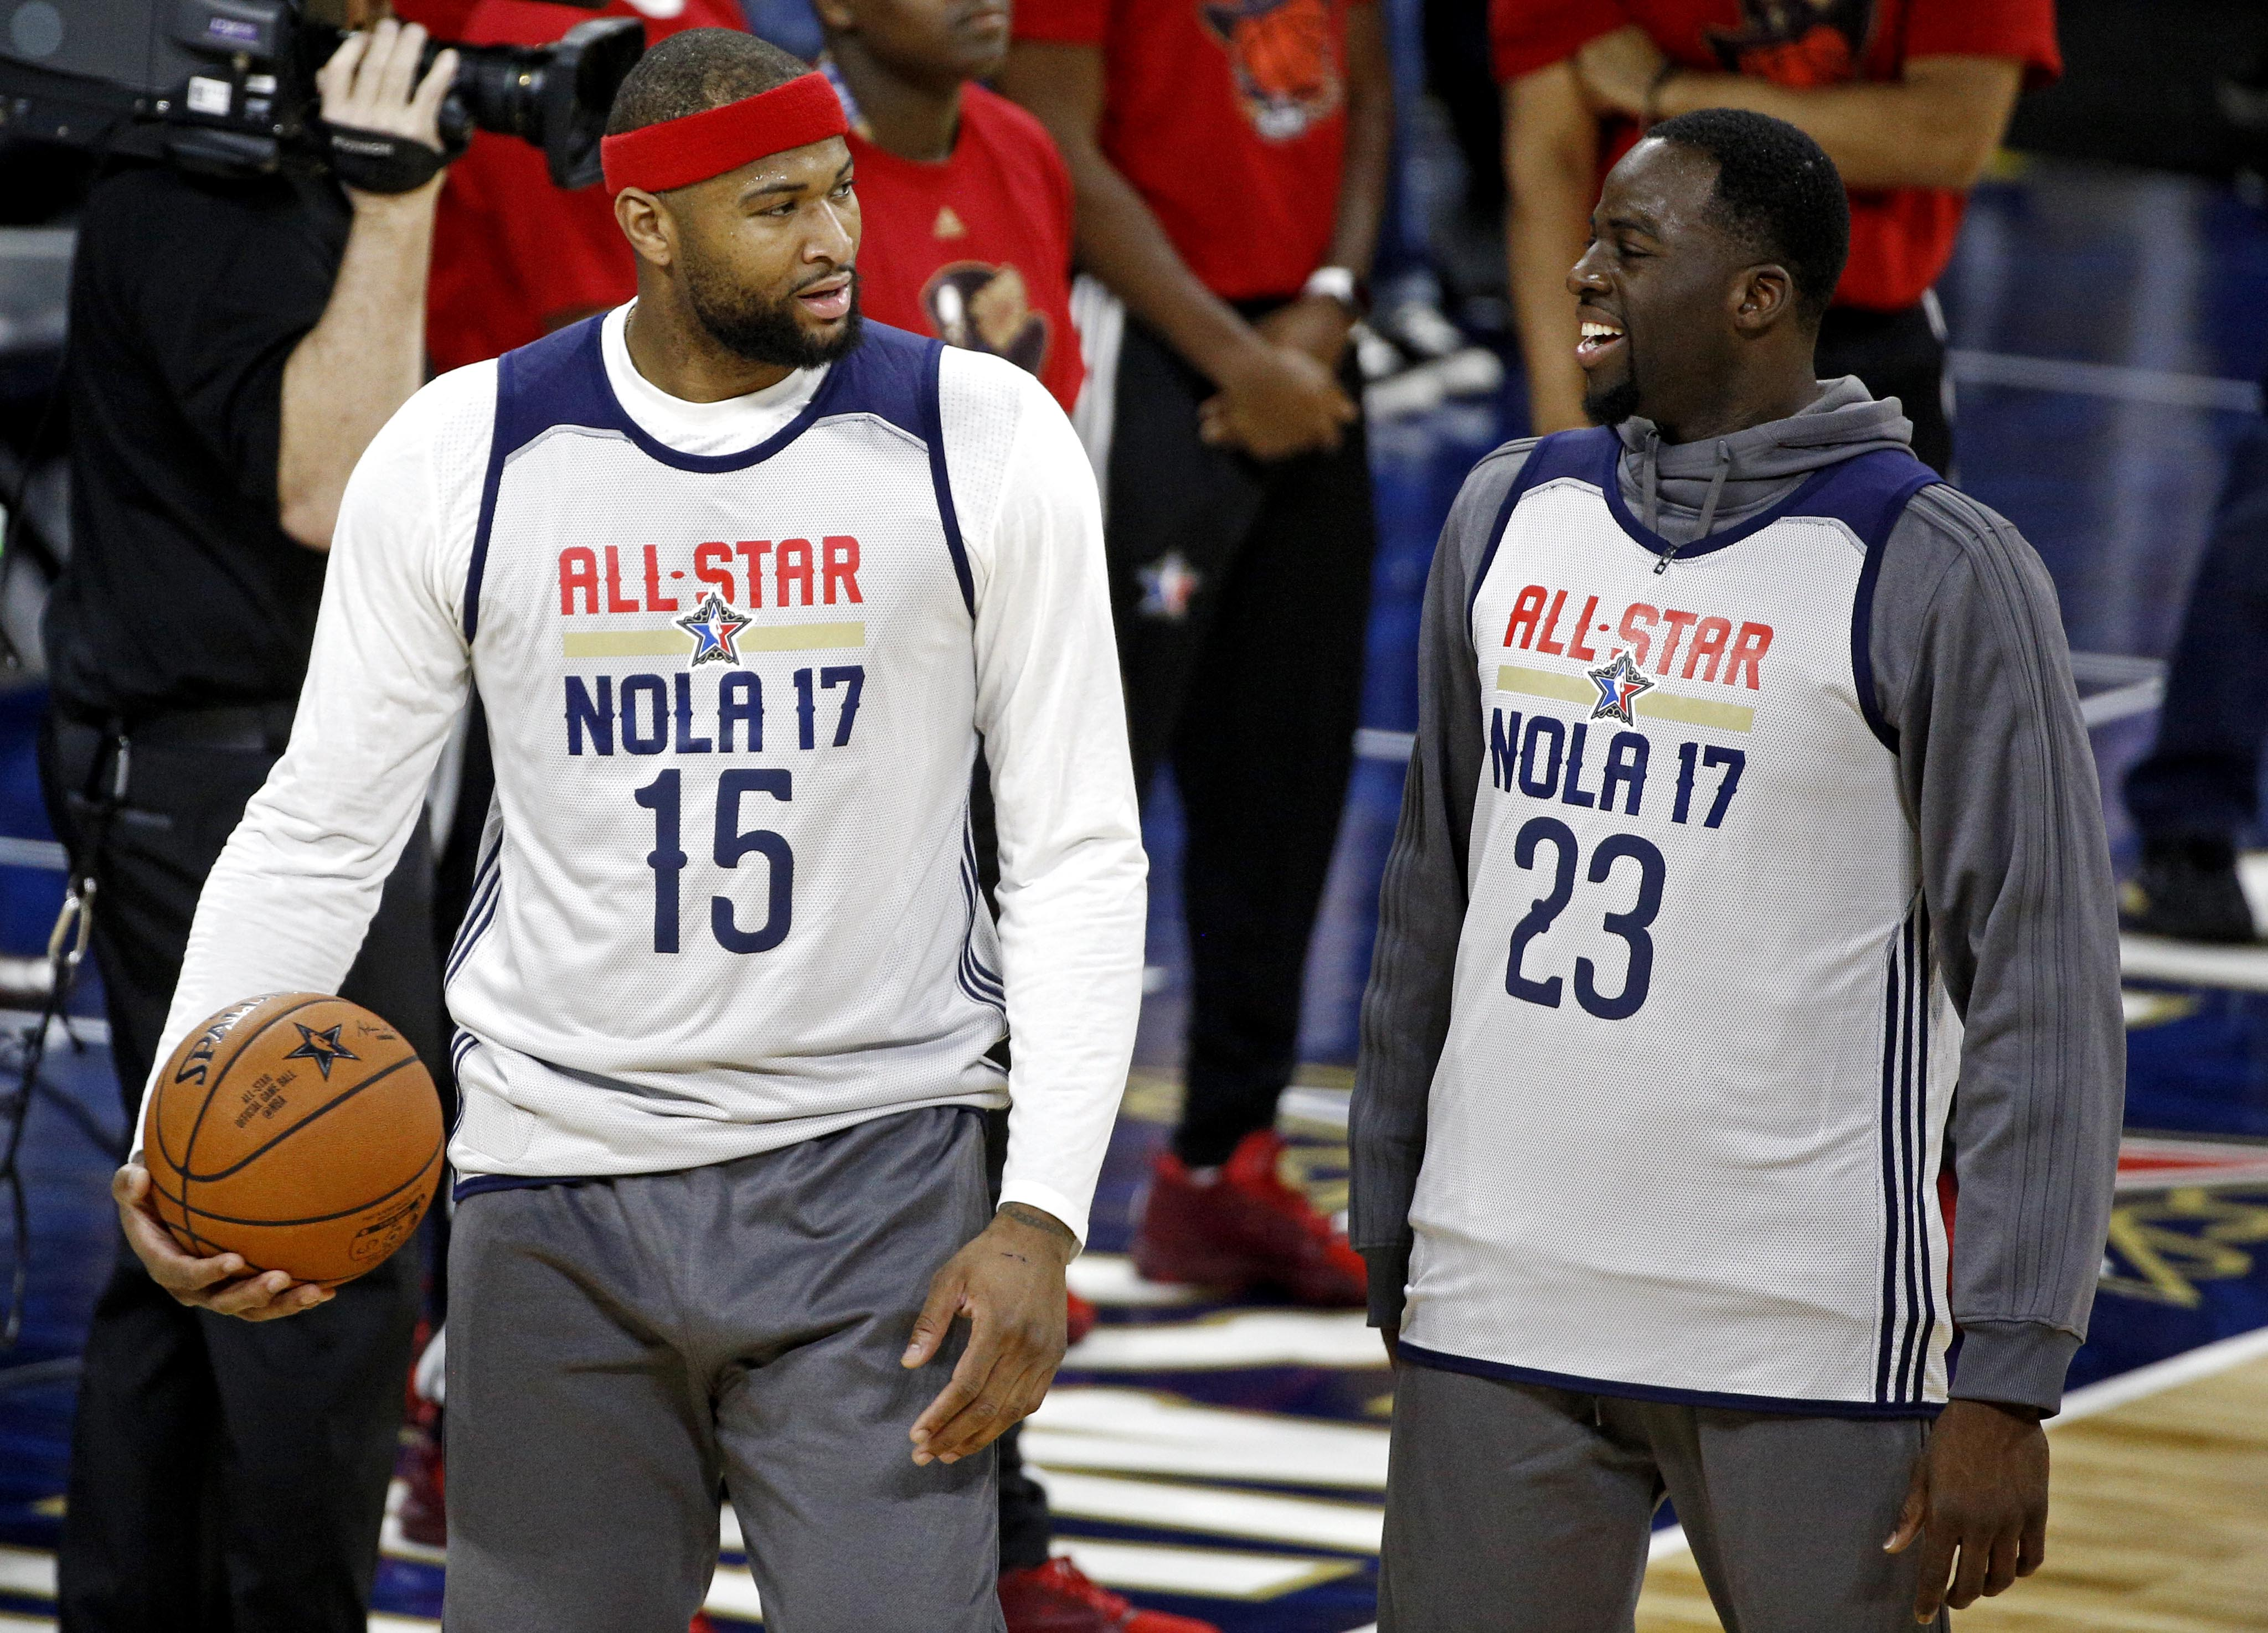 9884031-nba-all-star-practice